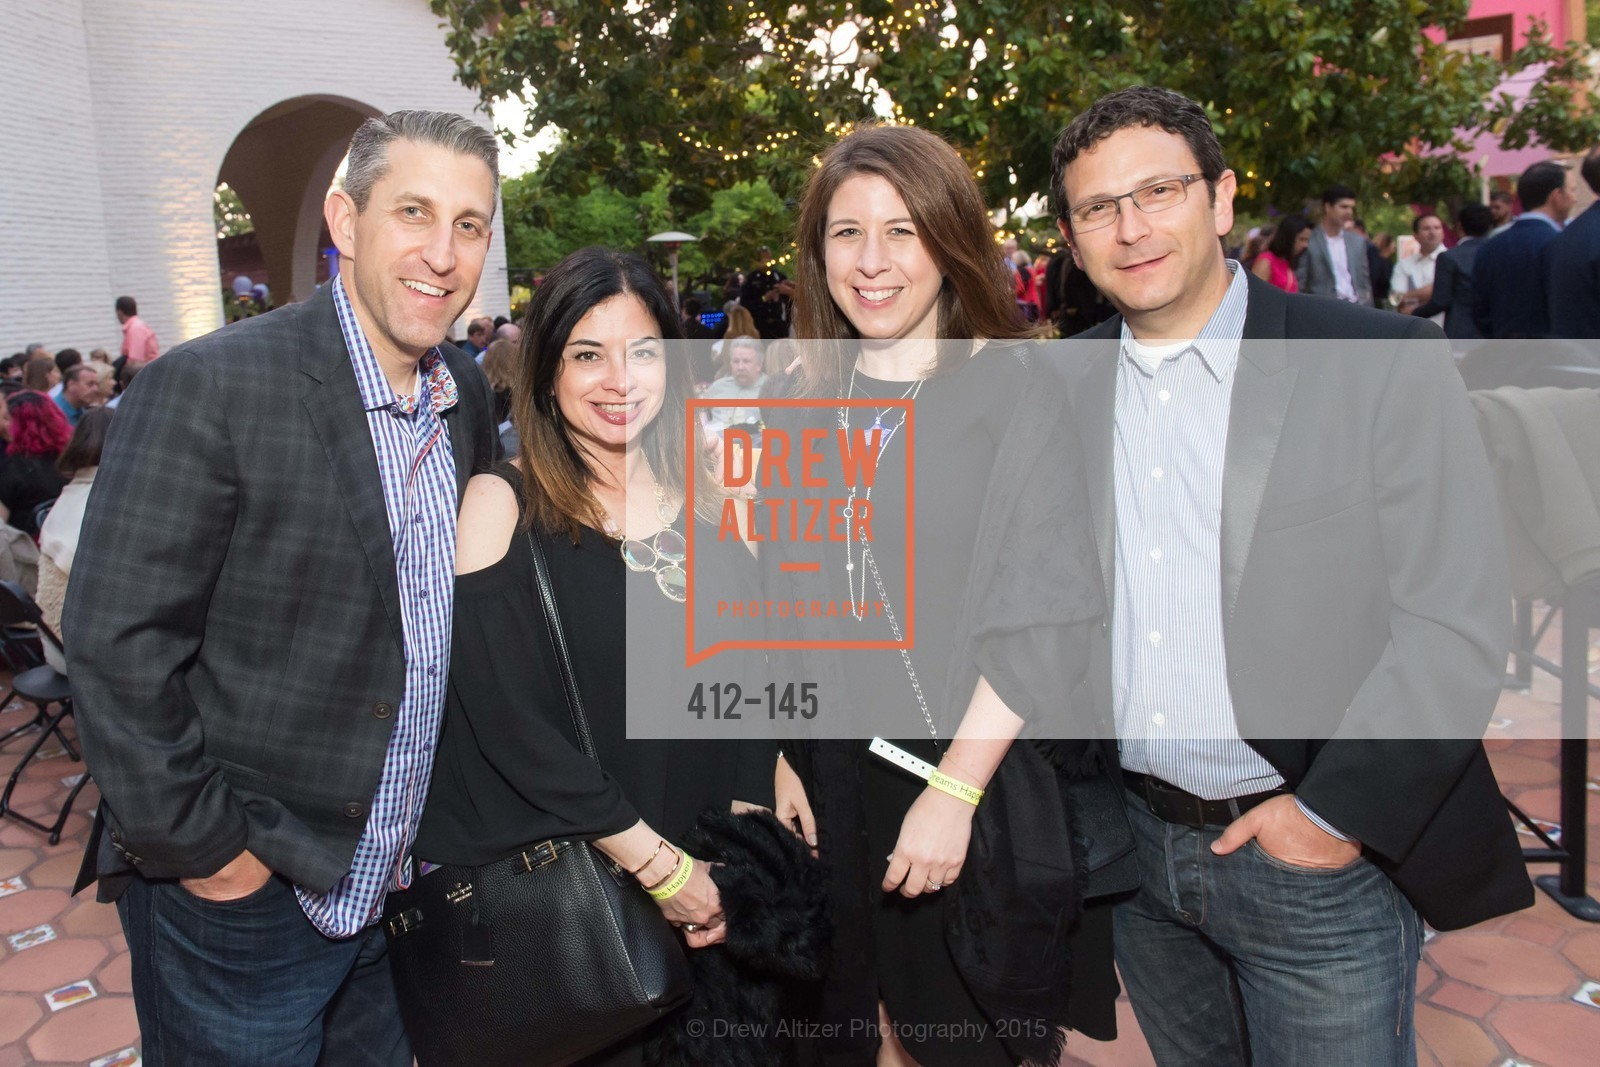 Greg Zeldin, Sheila Zeldin, Dana Zeldin, Tad Zeldin, DREAMS HAPPEN: Playhouse Auction and Gala, Stanford Shopping Center, June 5th, 2015,Drew Altizer, Drew Altizer Photography, full-service agency, private events, San Francisco photographer, photographer california